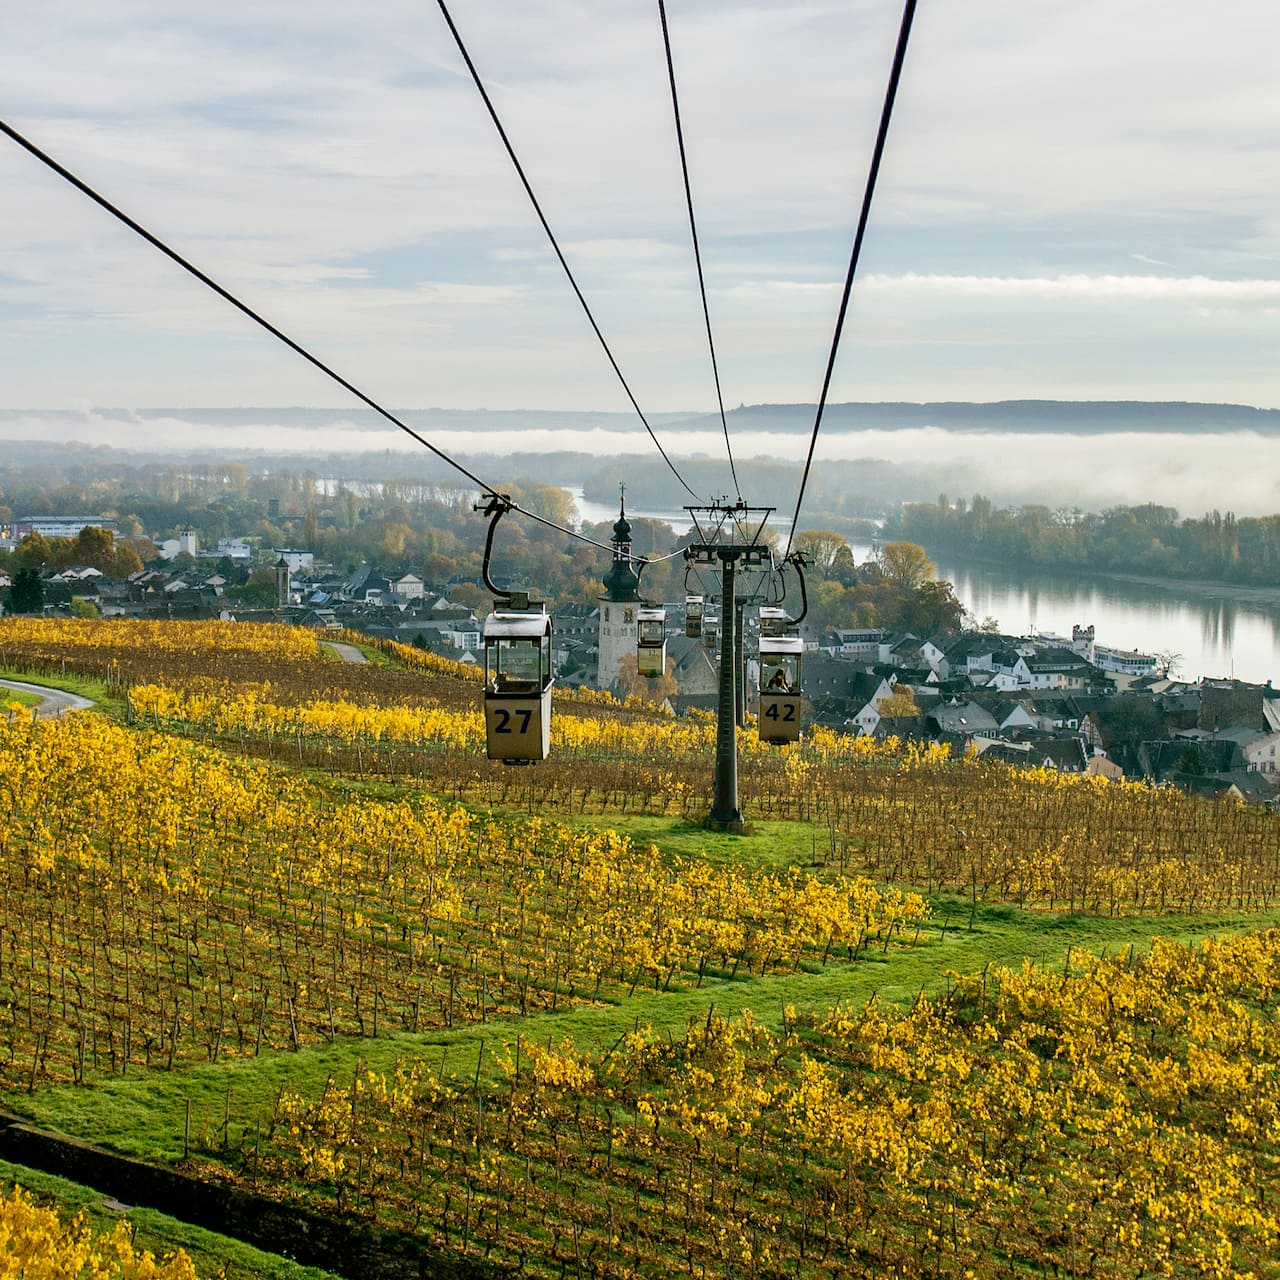 A gondola stretches out over a pastoral setting in Rüdesheim